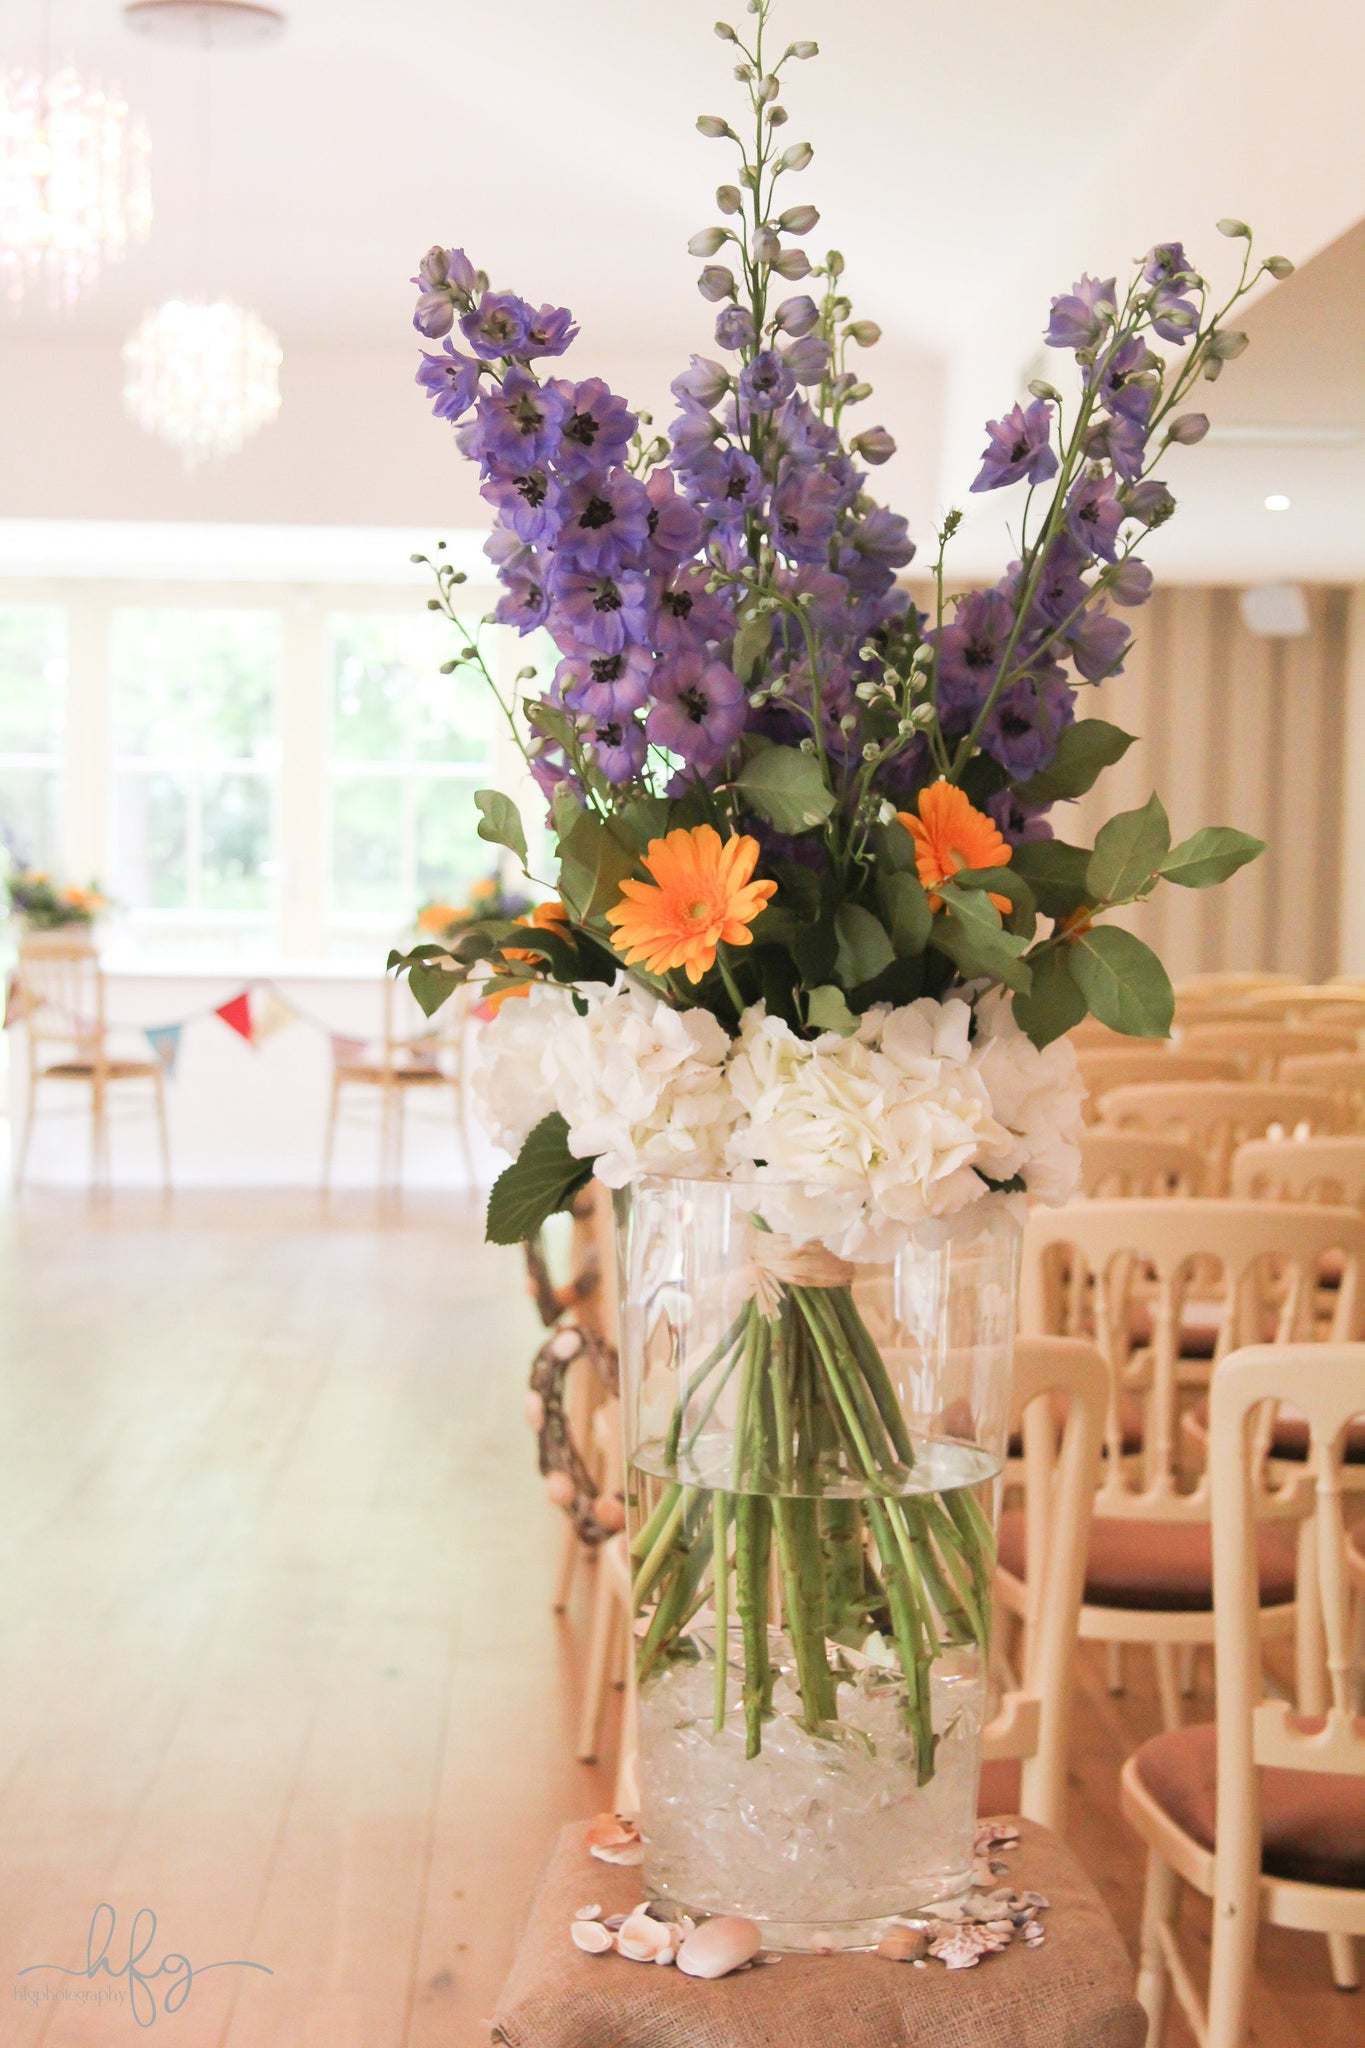 Venue decorations with orange Gerbera, purple Gladioli, white Hydrangea and foliage, fitting in with seaside theme.